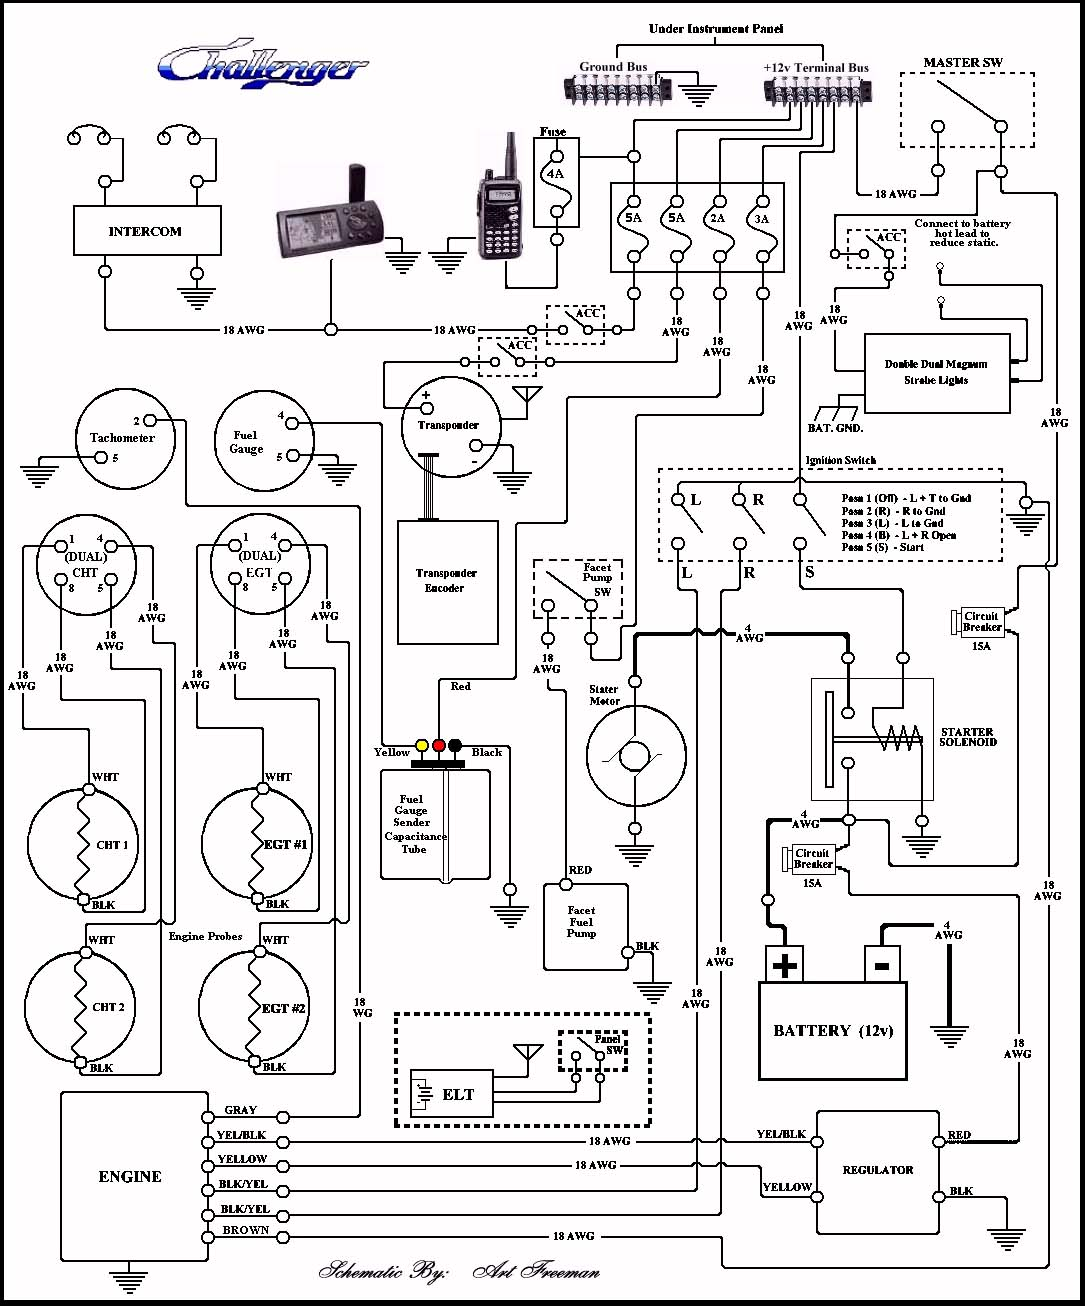 Schem_Analog basic panel wiring diagram wiring diagram simonand rv distribution panel wiring diagram at mr168.co